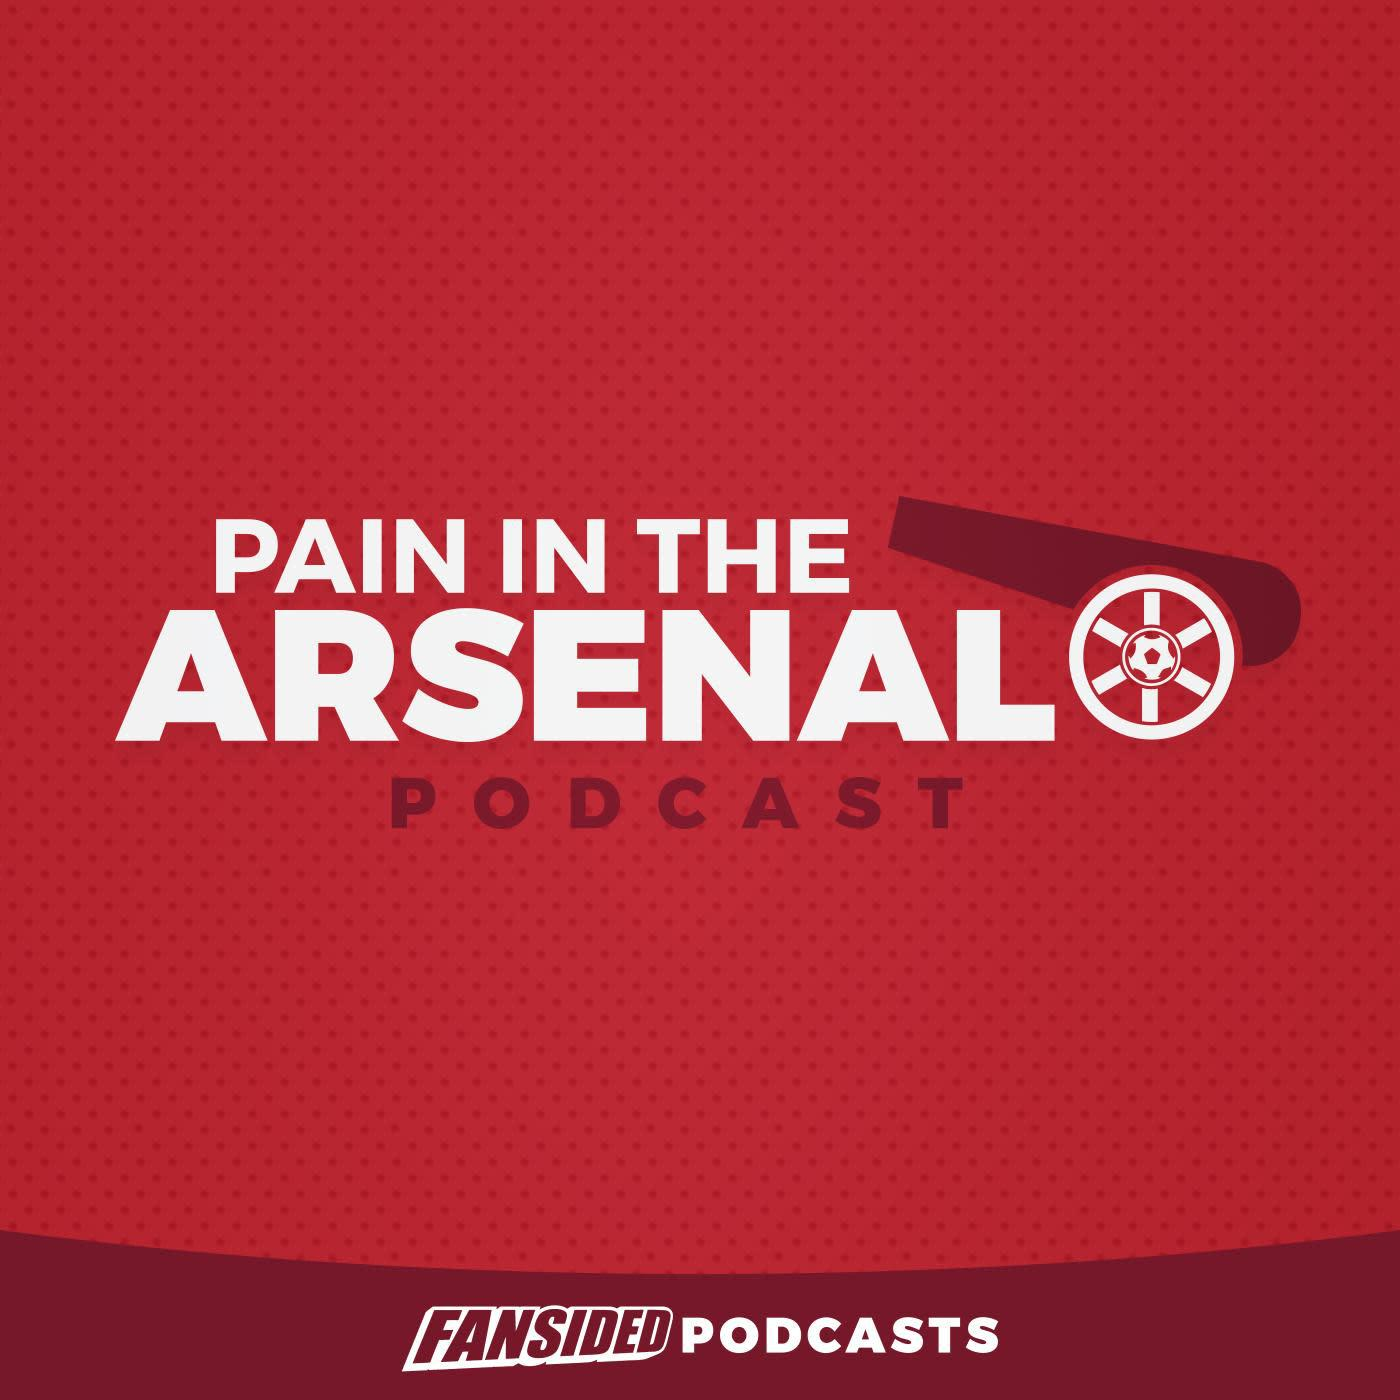 Pain in the Arsenal Podcast on Arsenal FC - FanSided